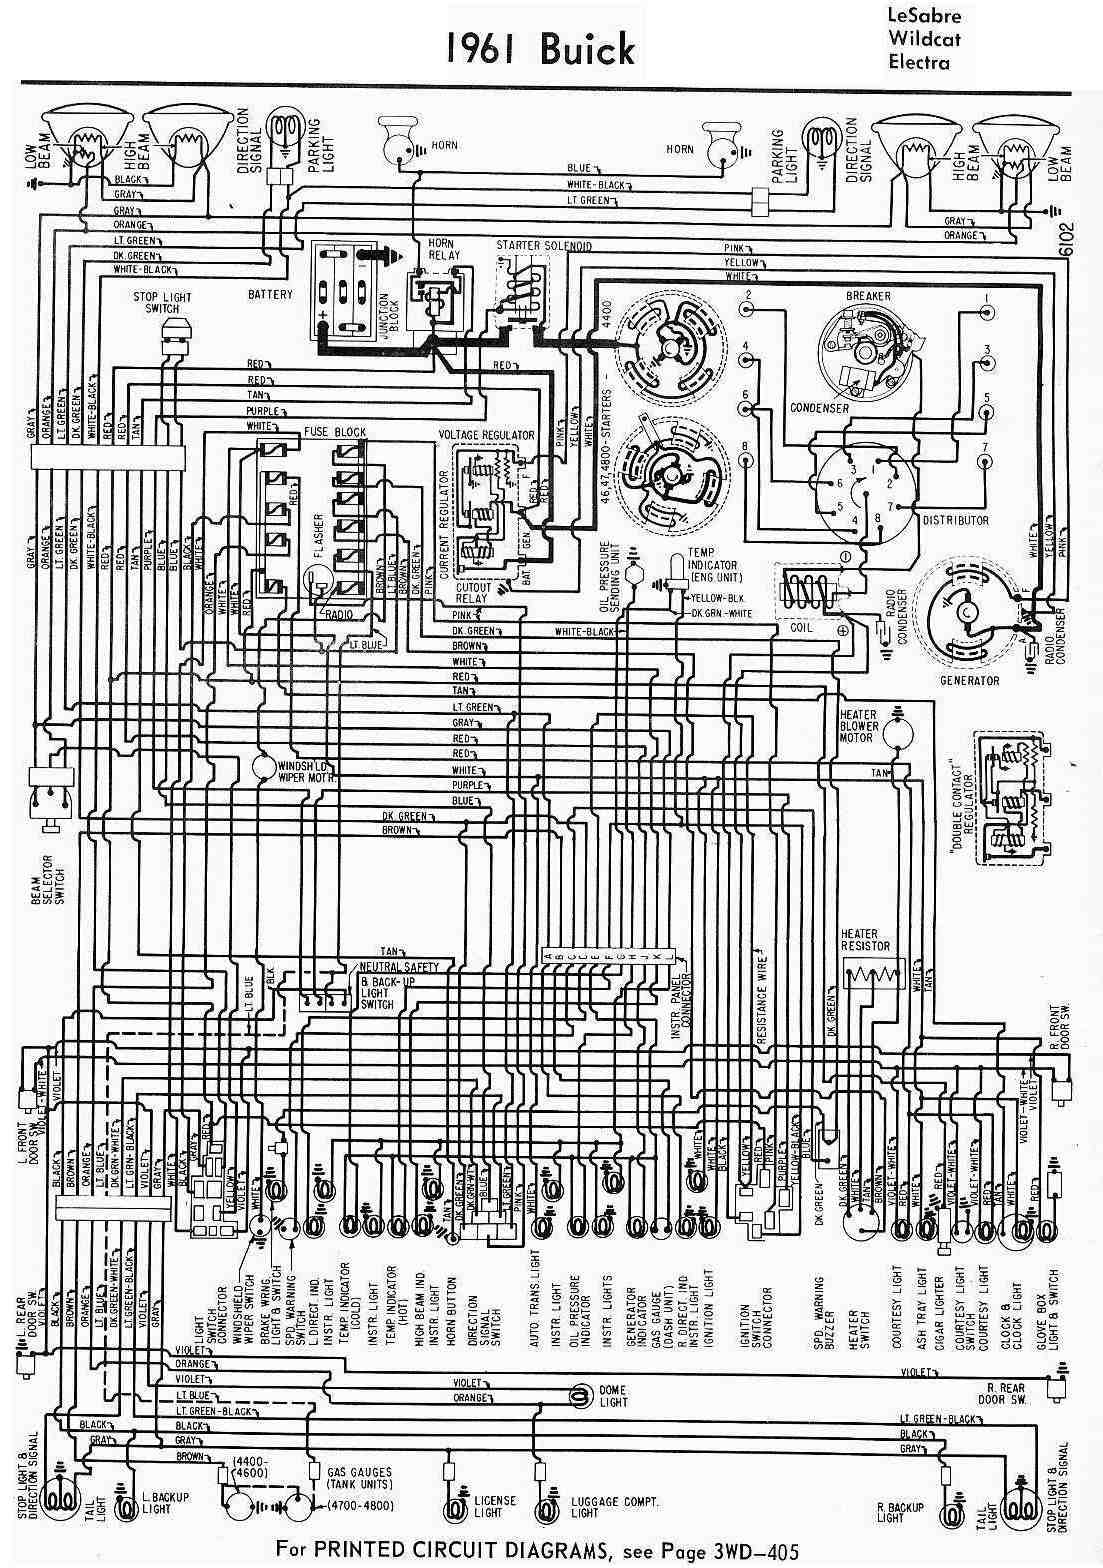 medium resolution of 1961 chrysler wiring diagram wiring diagrams posts 1961 chrysler wiring diagram